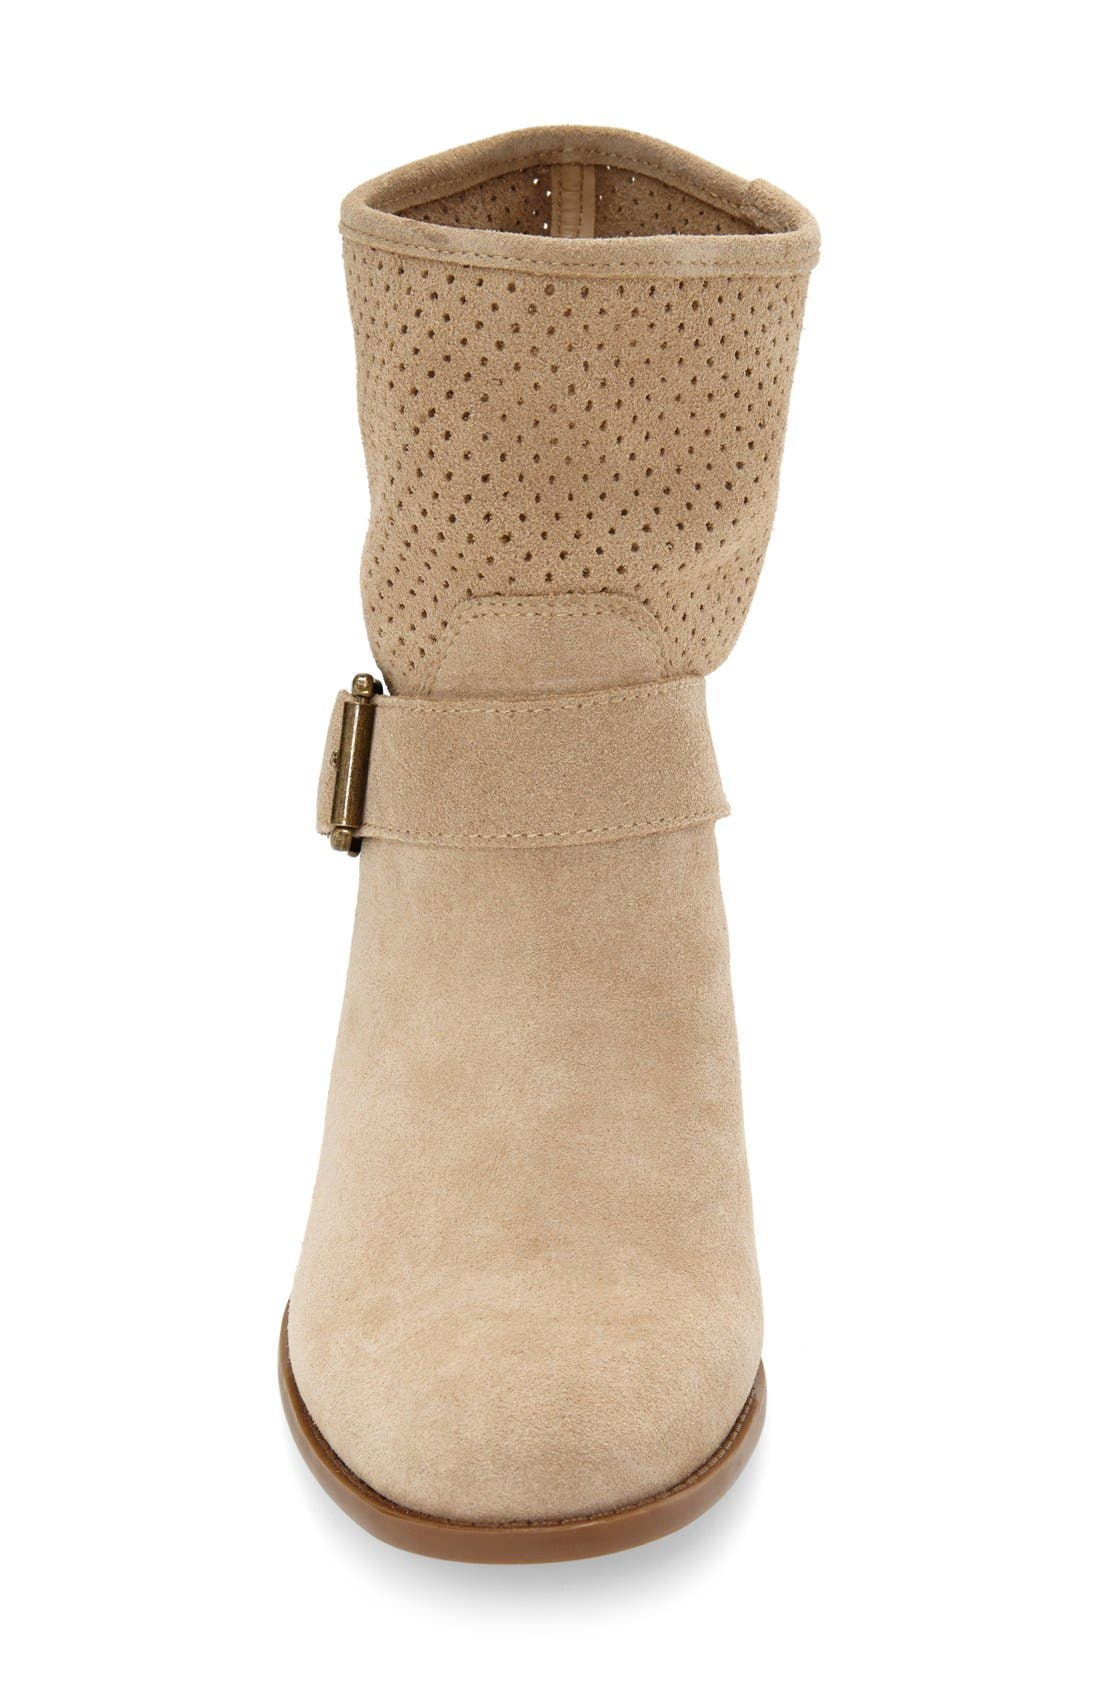 Alternate Image 3  - Sole Society 'Sola' Perforated Suede Western Bootie (Women)